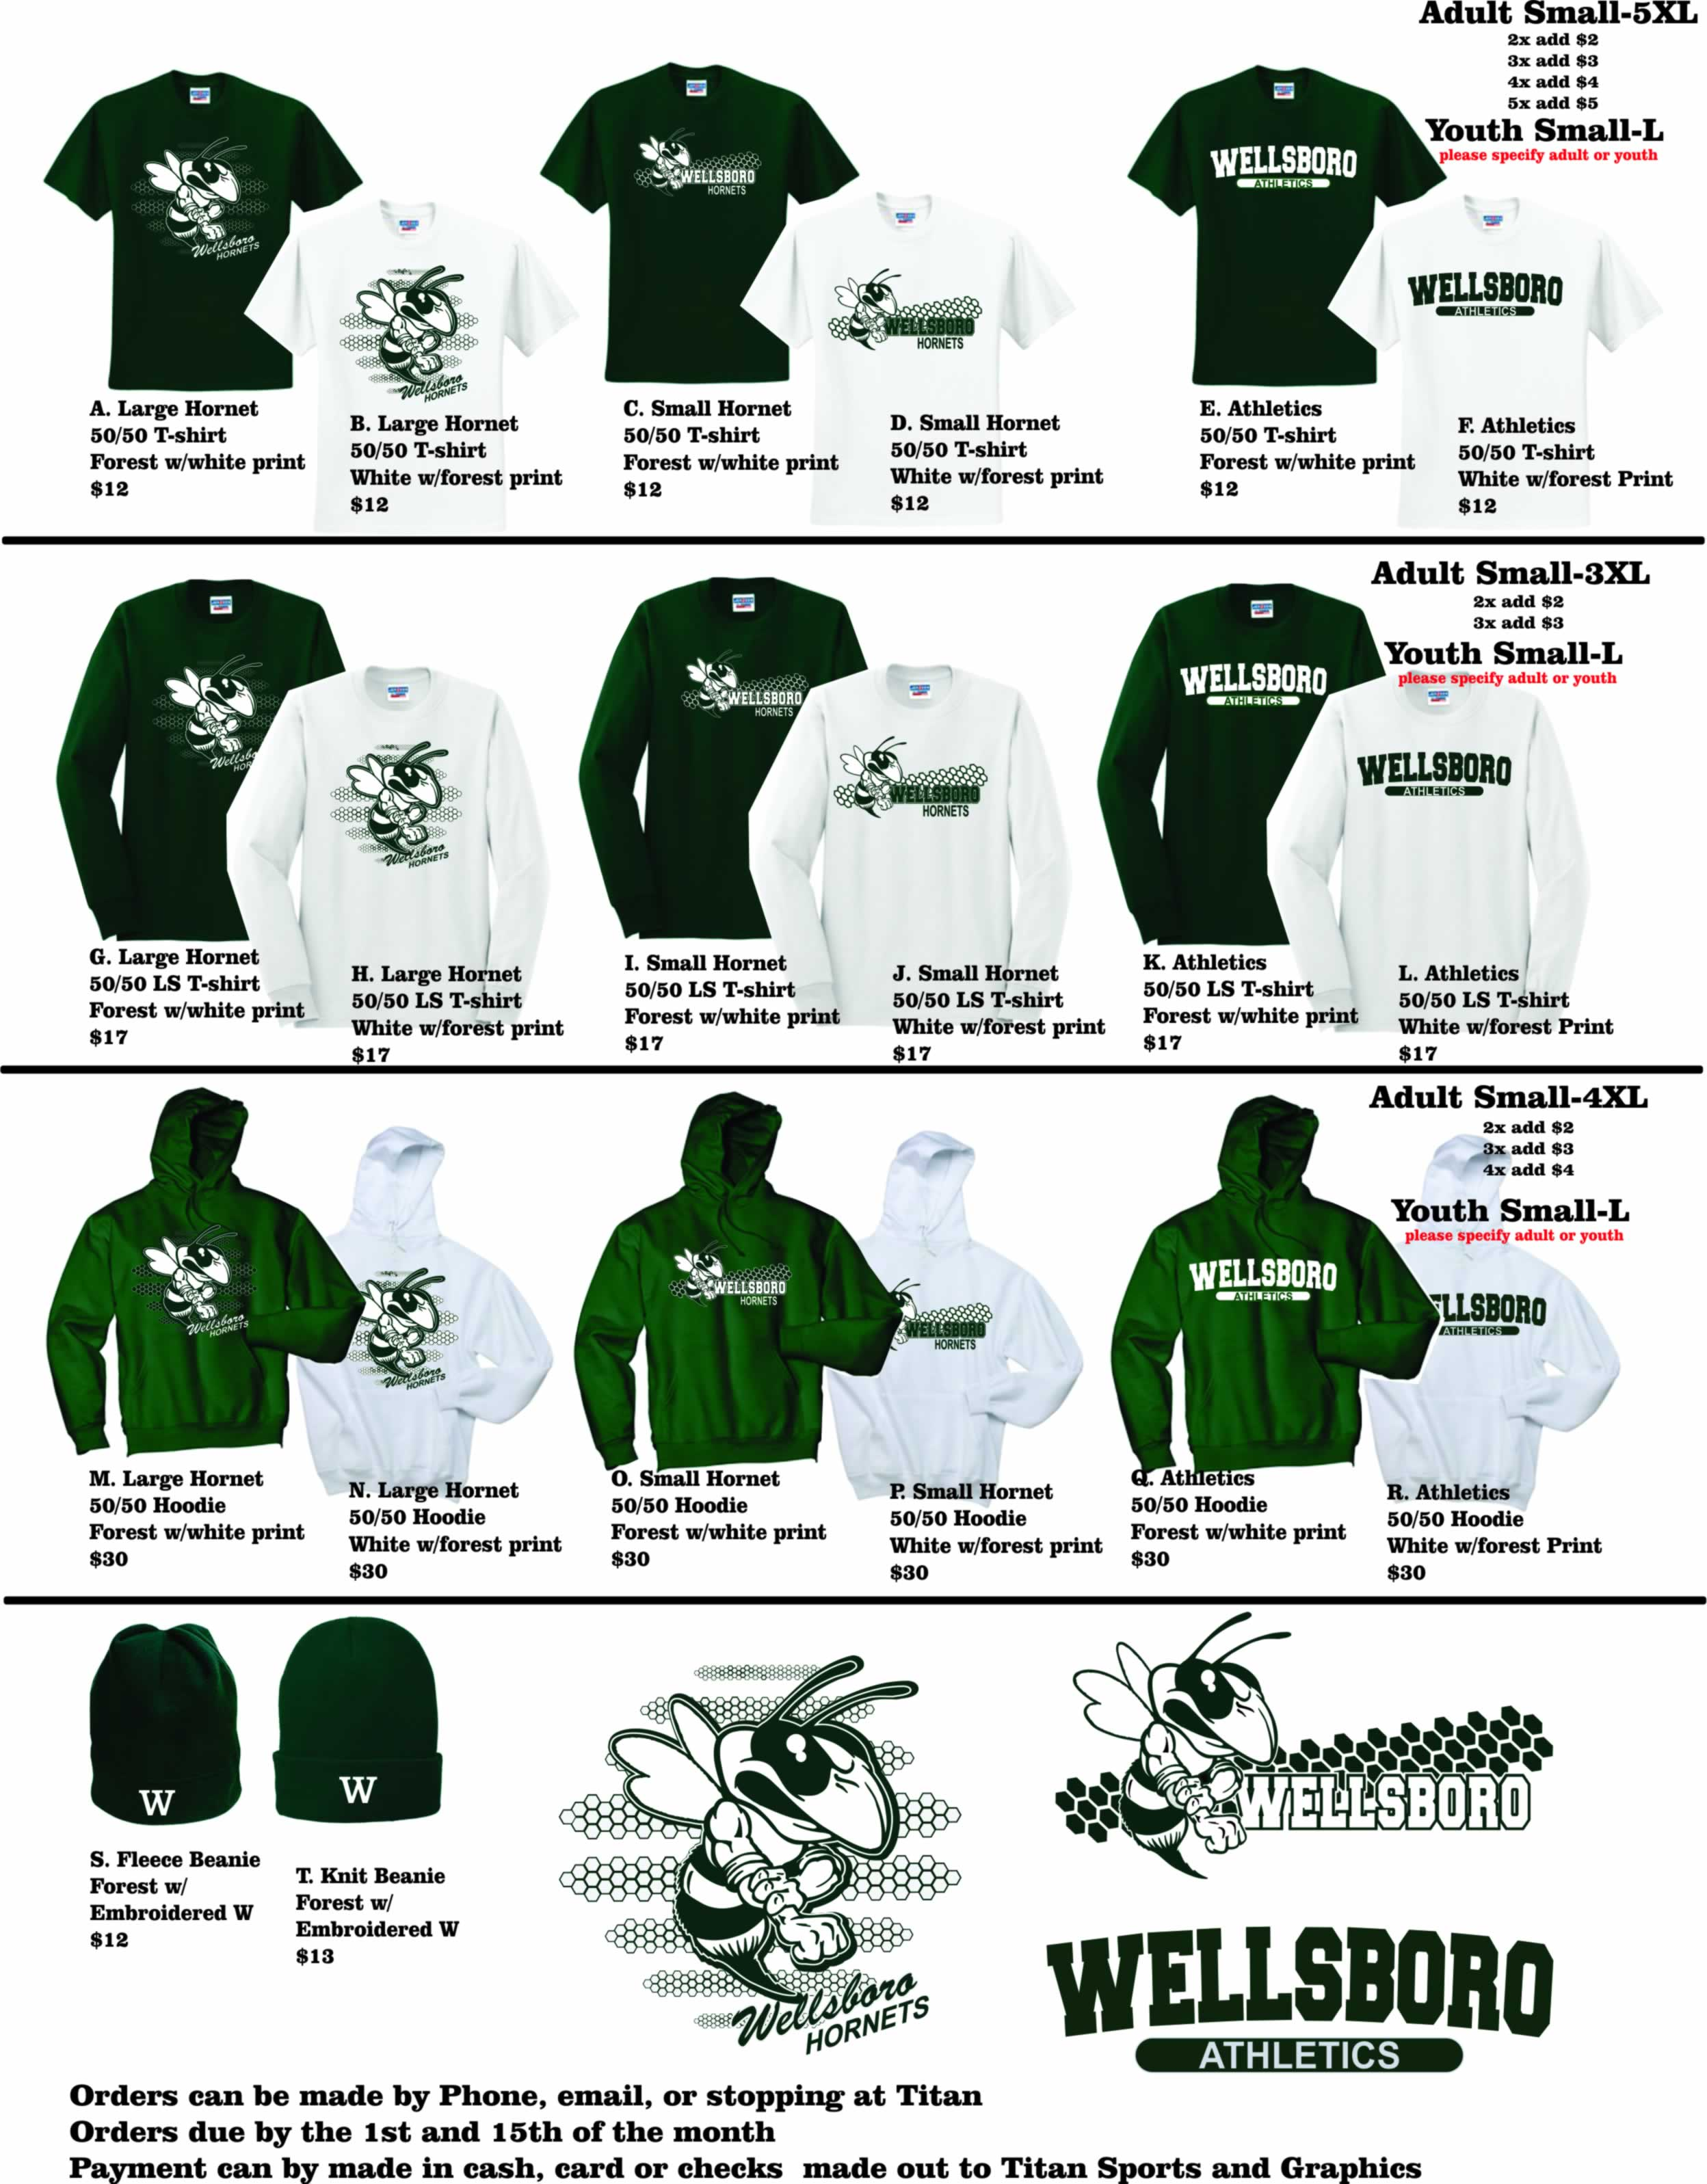 Buy your official Wellsboro Hornets Merchandise from Titan Sports & Graphics